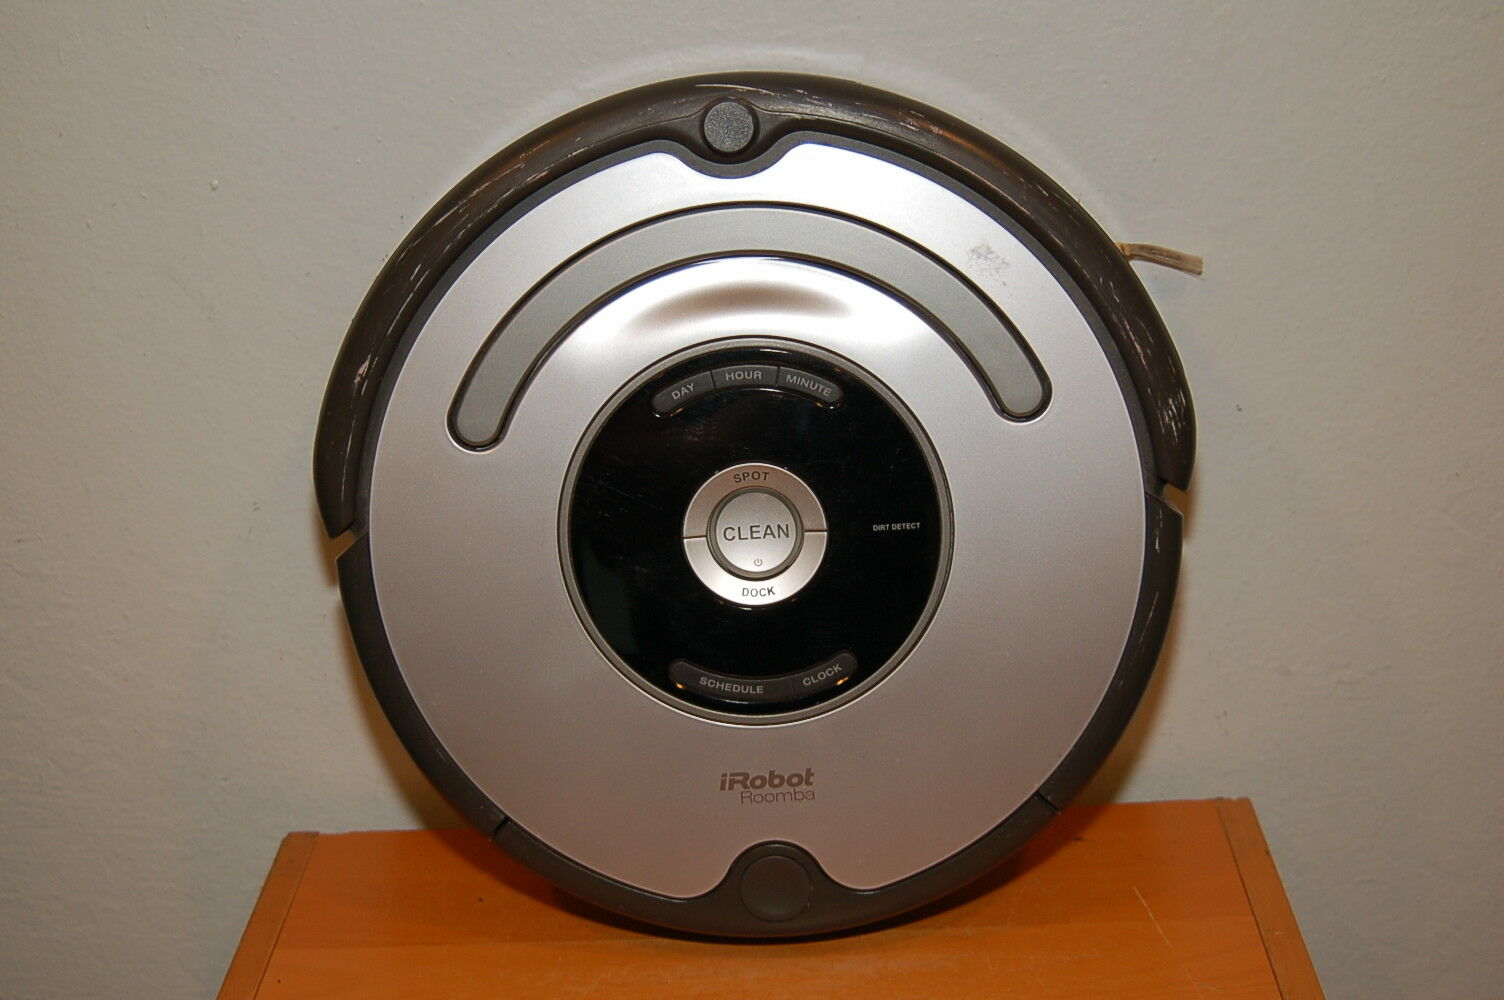 IRobot Roomba 655 Robot Vacuum Cleaning System Vacuum Only